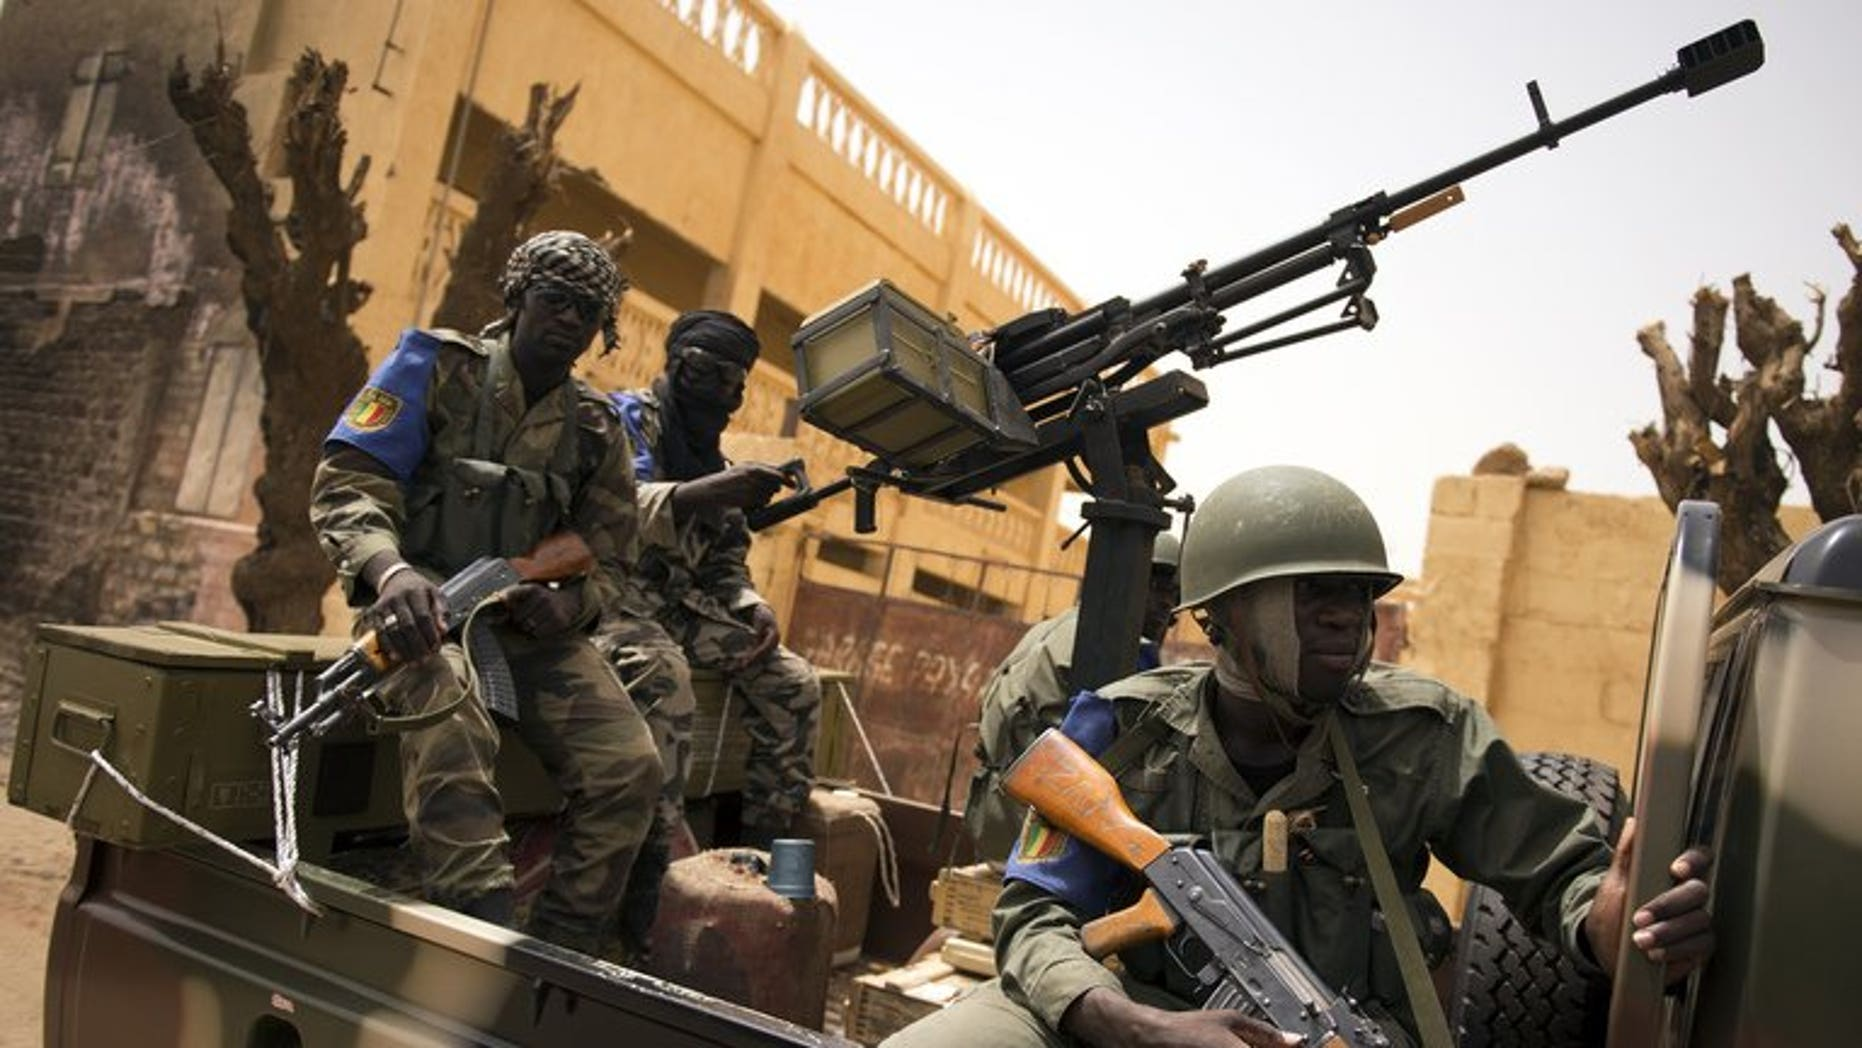 Malian soldiers patrol in the streets of Gao on June 13, 2013. Malian troops entered the rebel-held northeastern town of Kidal on Friday, the army said, to secure it for a presidential election due across the west African country on July 28.